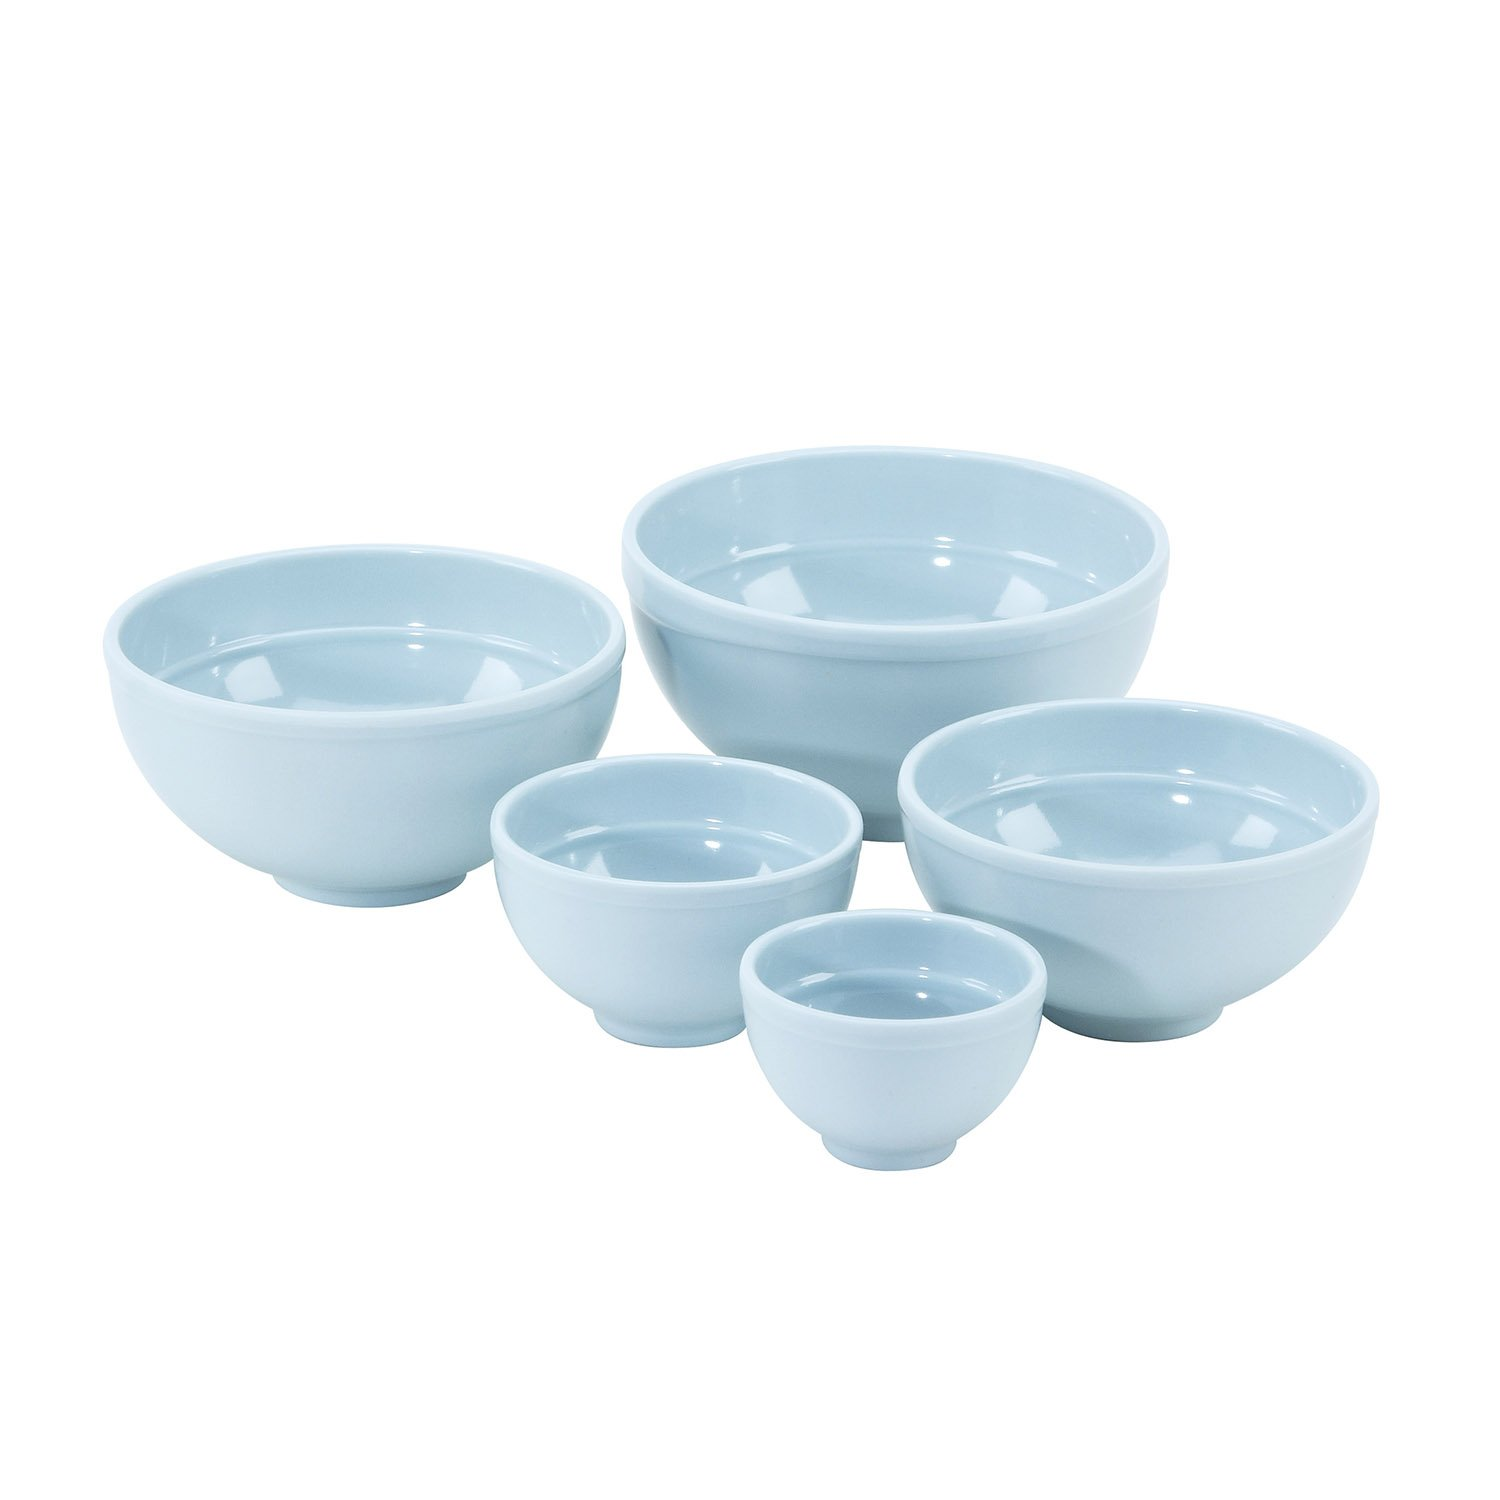 Sweet Creations 4780 5-Piece Prep Bowls Bradshaw International 04780